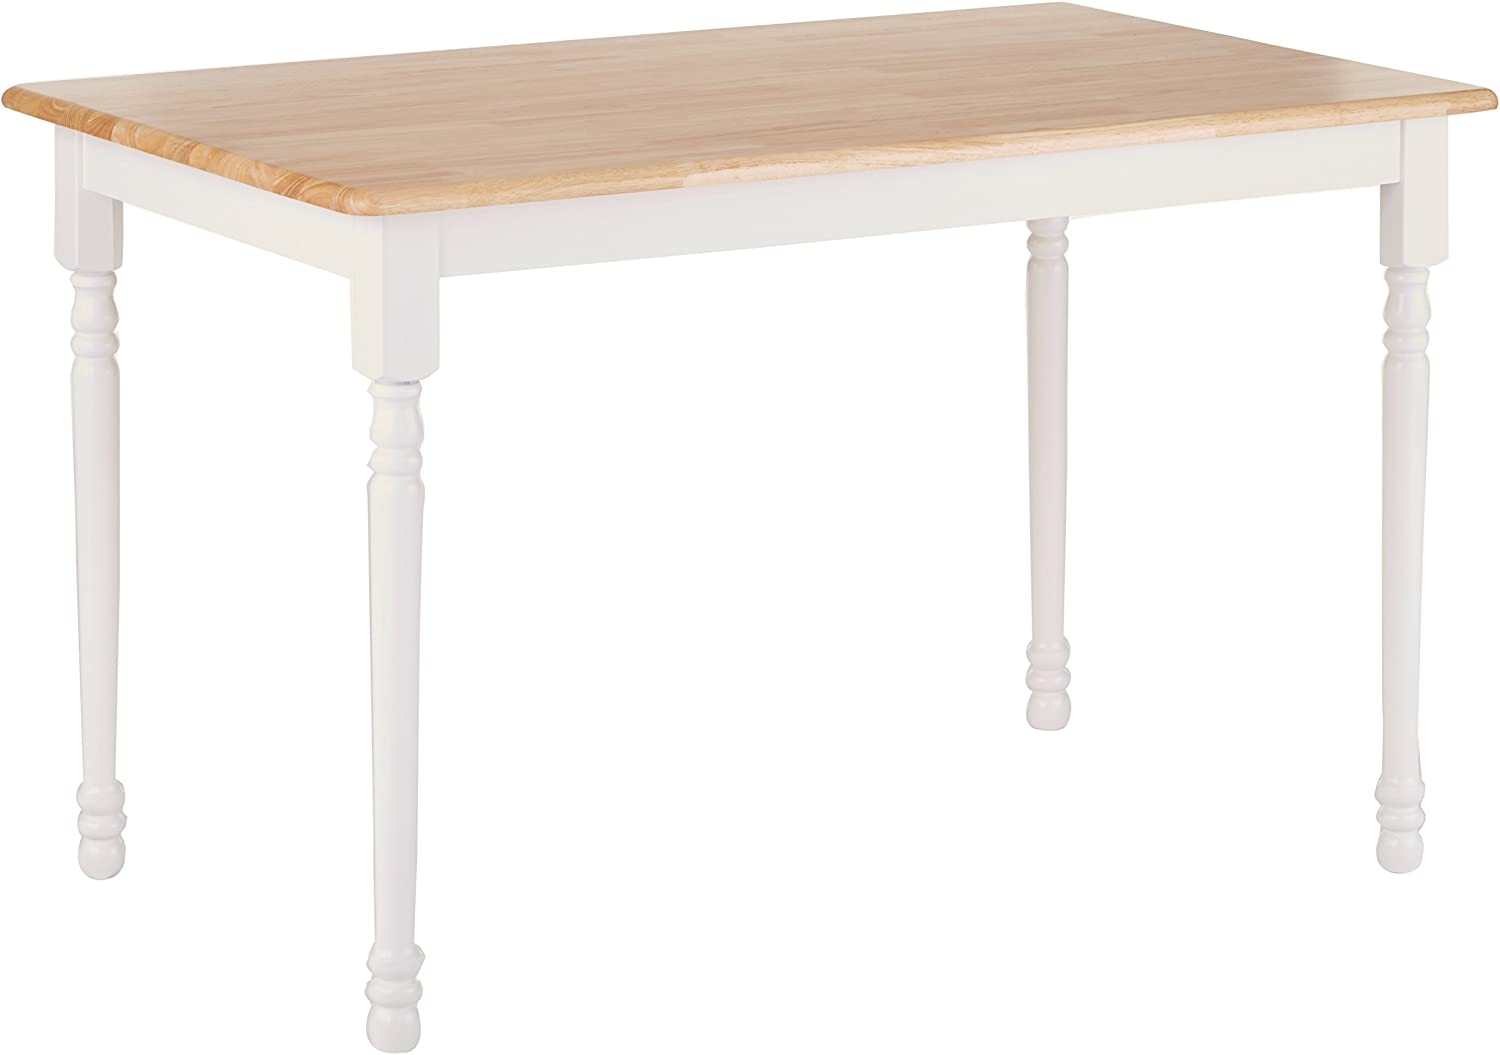 Damen Rectangle Dining Table Natural Brown and White